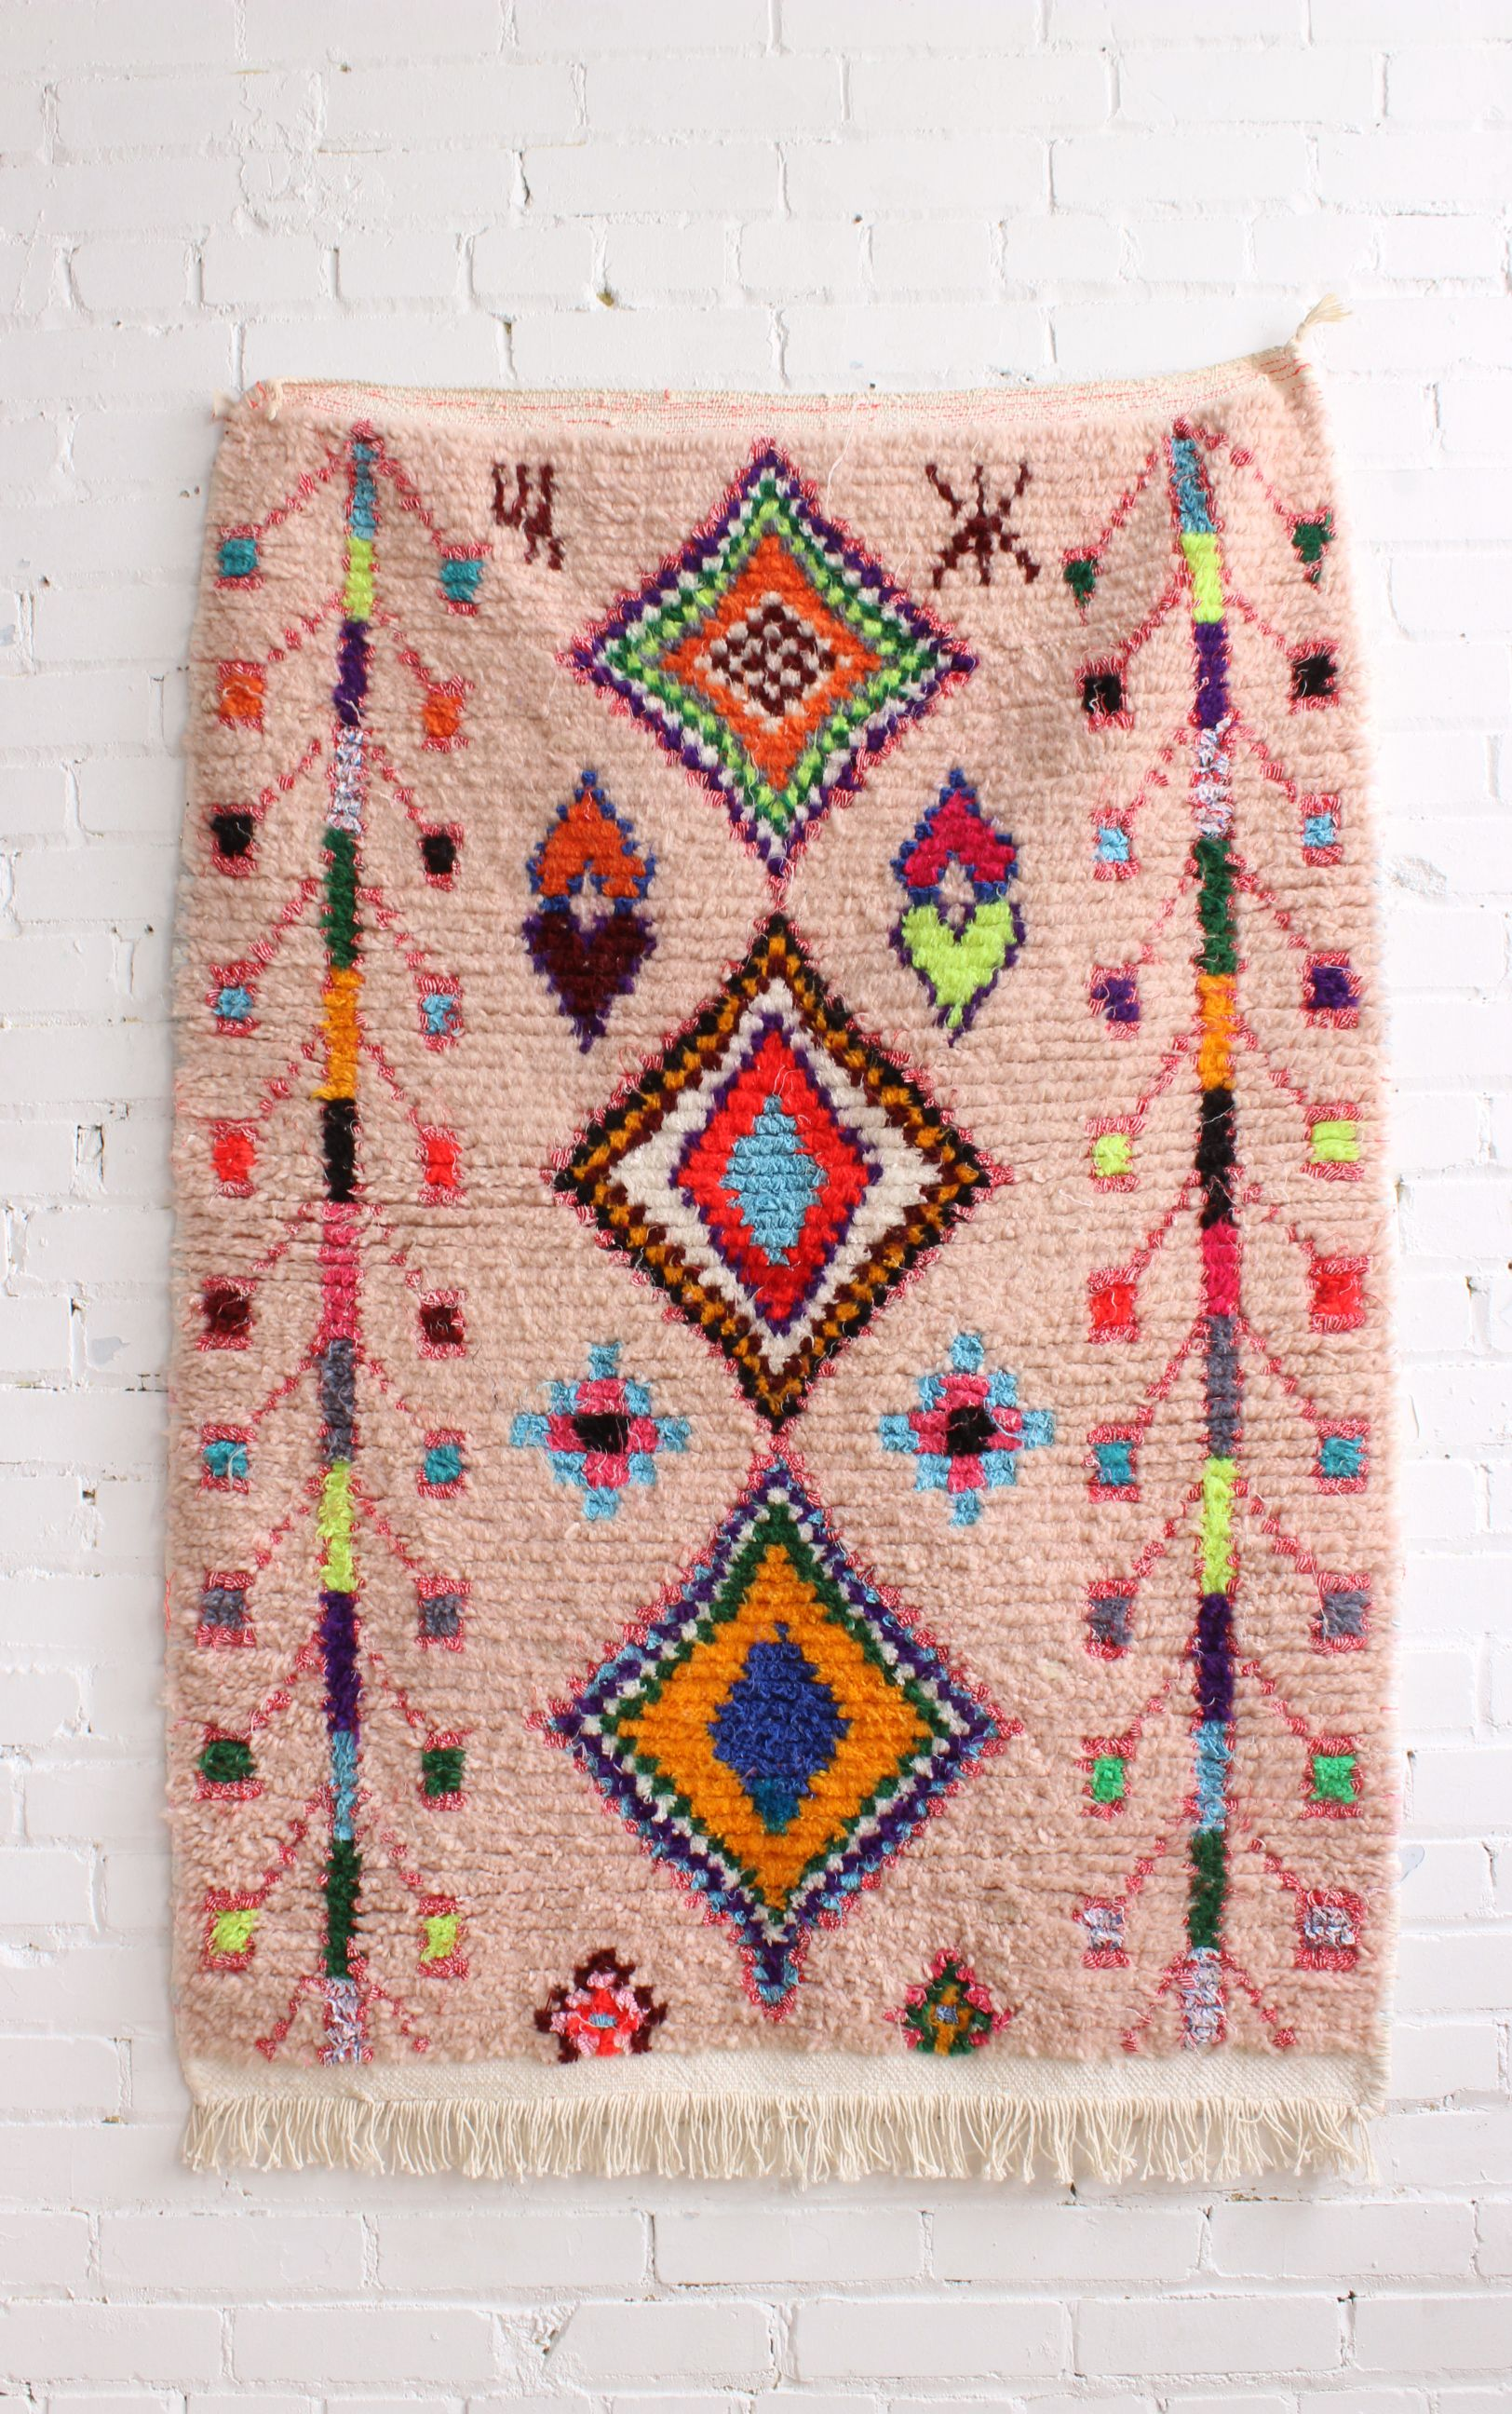 Pink Moroccan Rug From Baba Souk Girly Nursery Ideas In